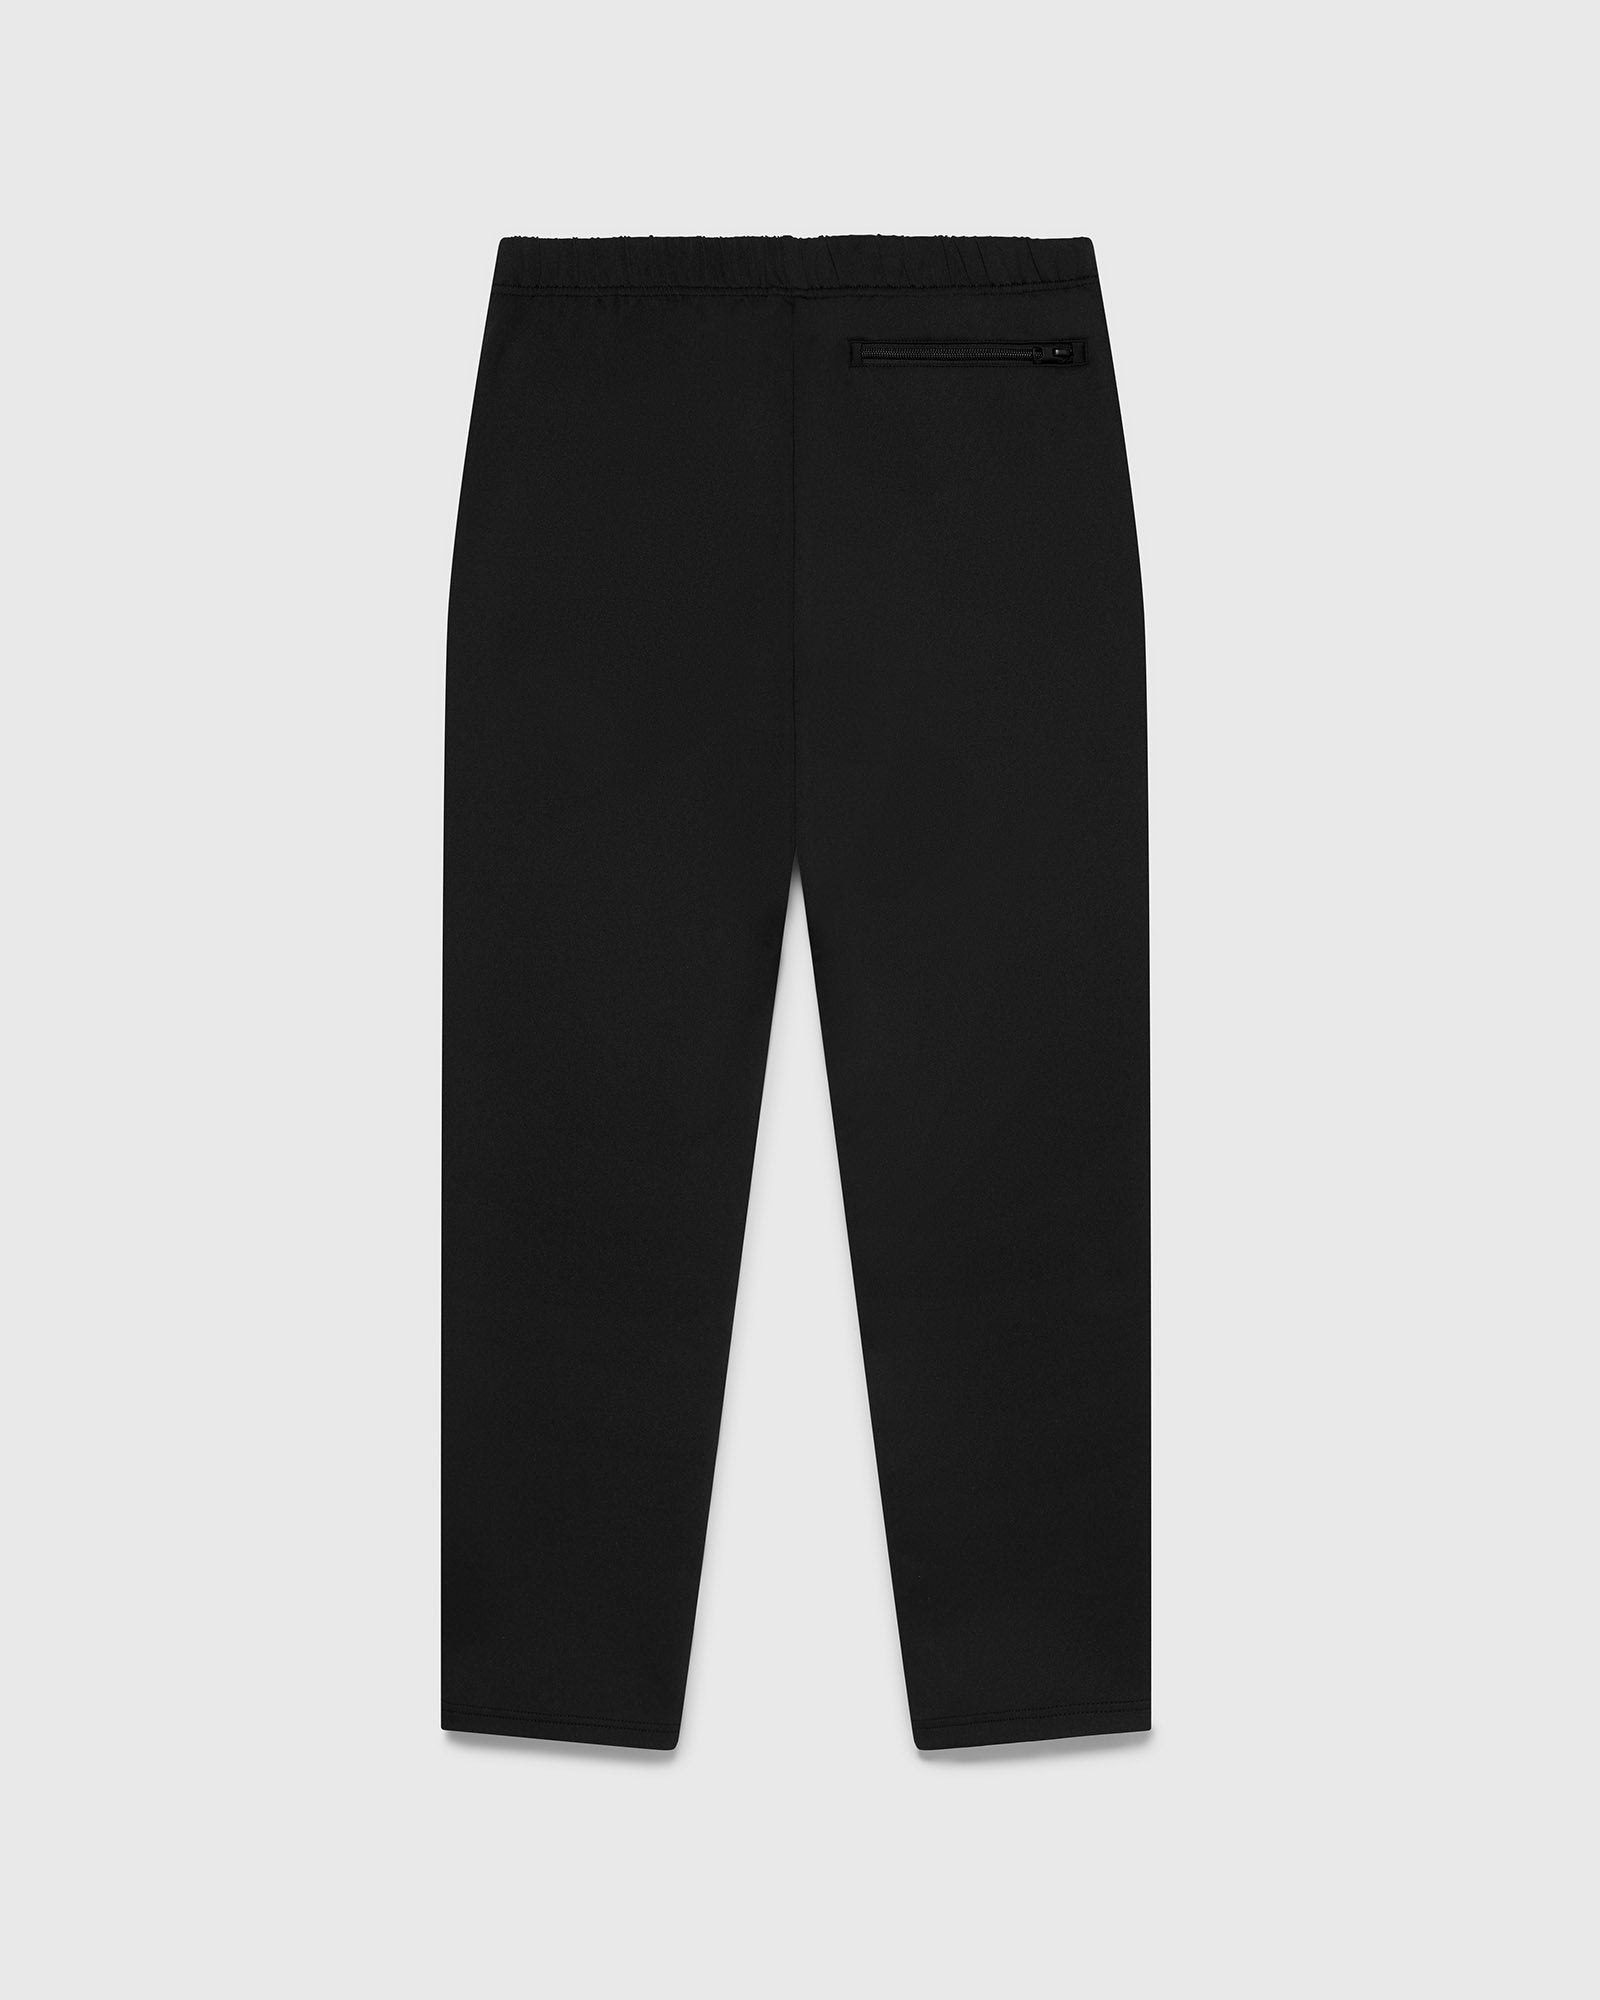 DOUBLE KNIT TRACK PANT - BLACK IMAGE #2